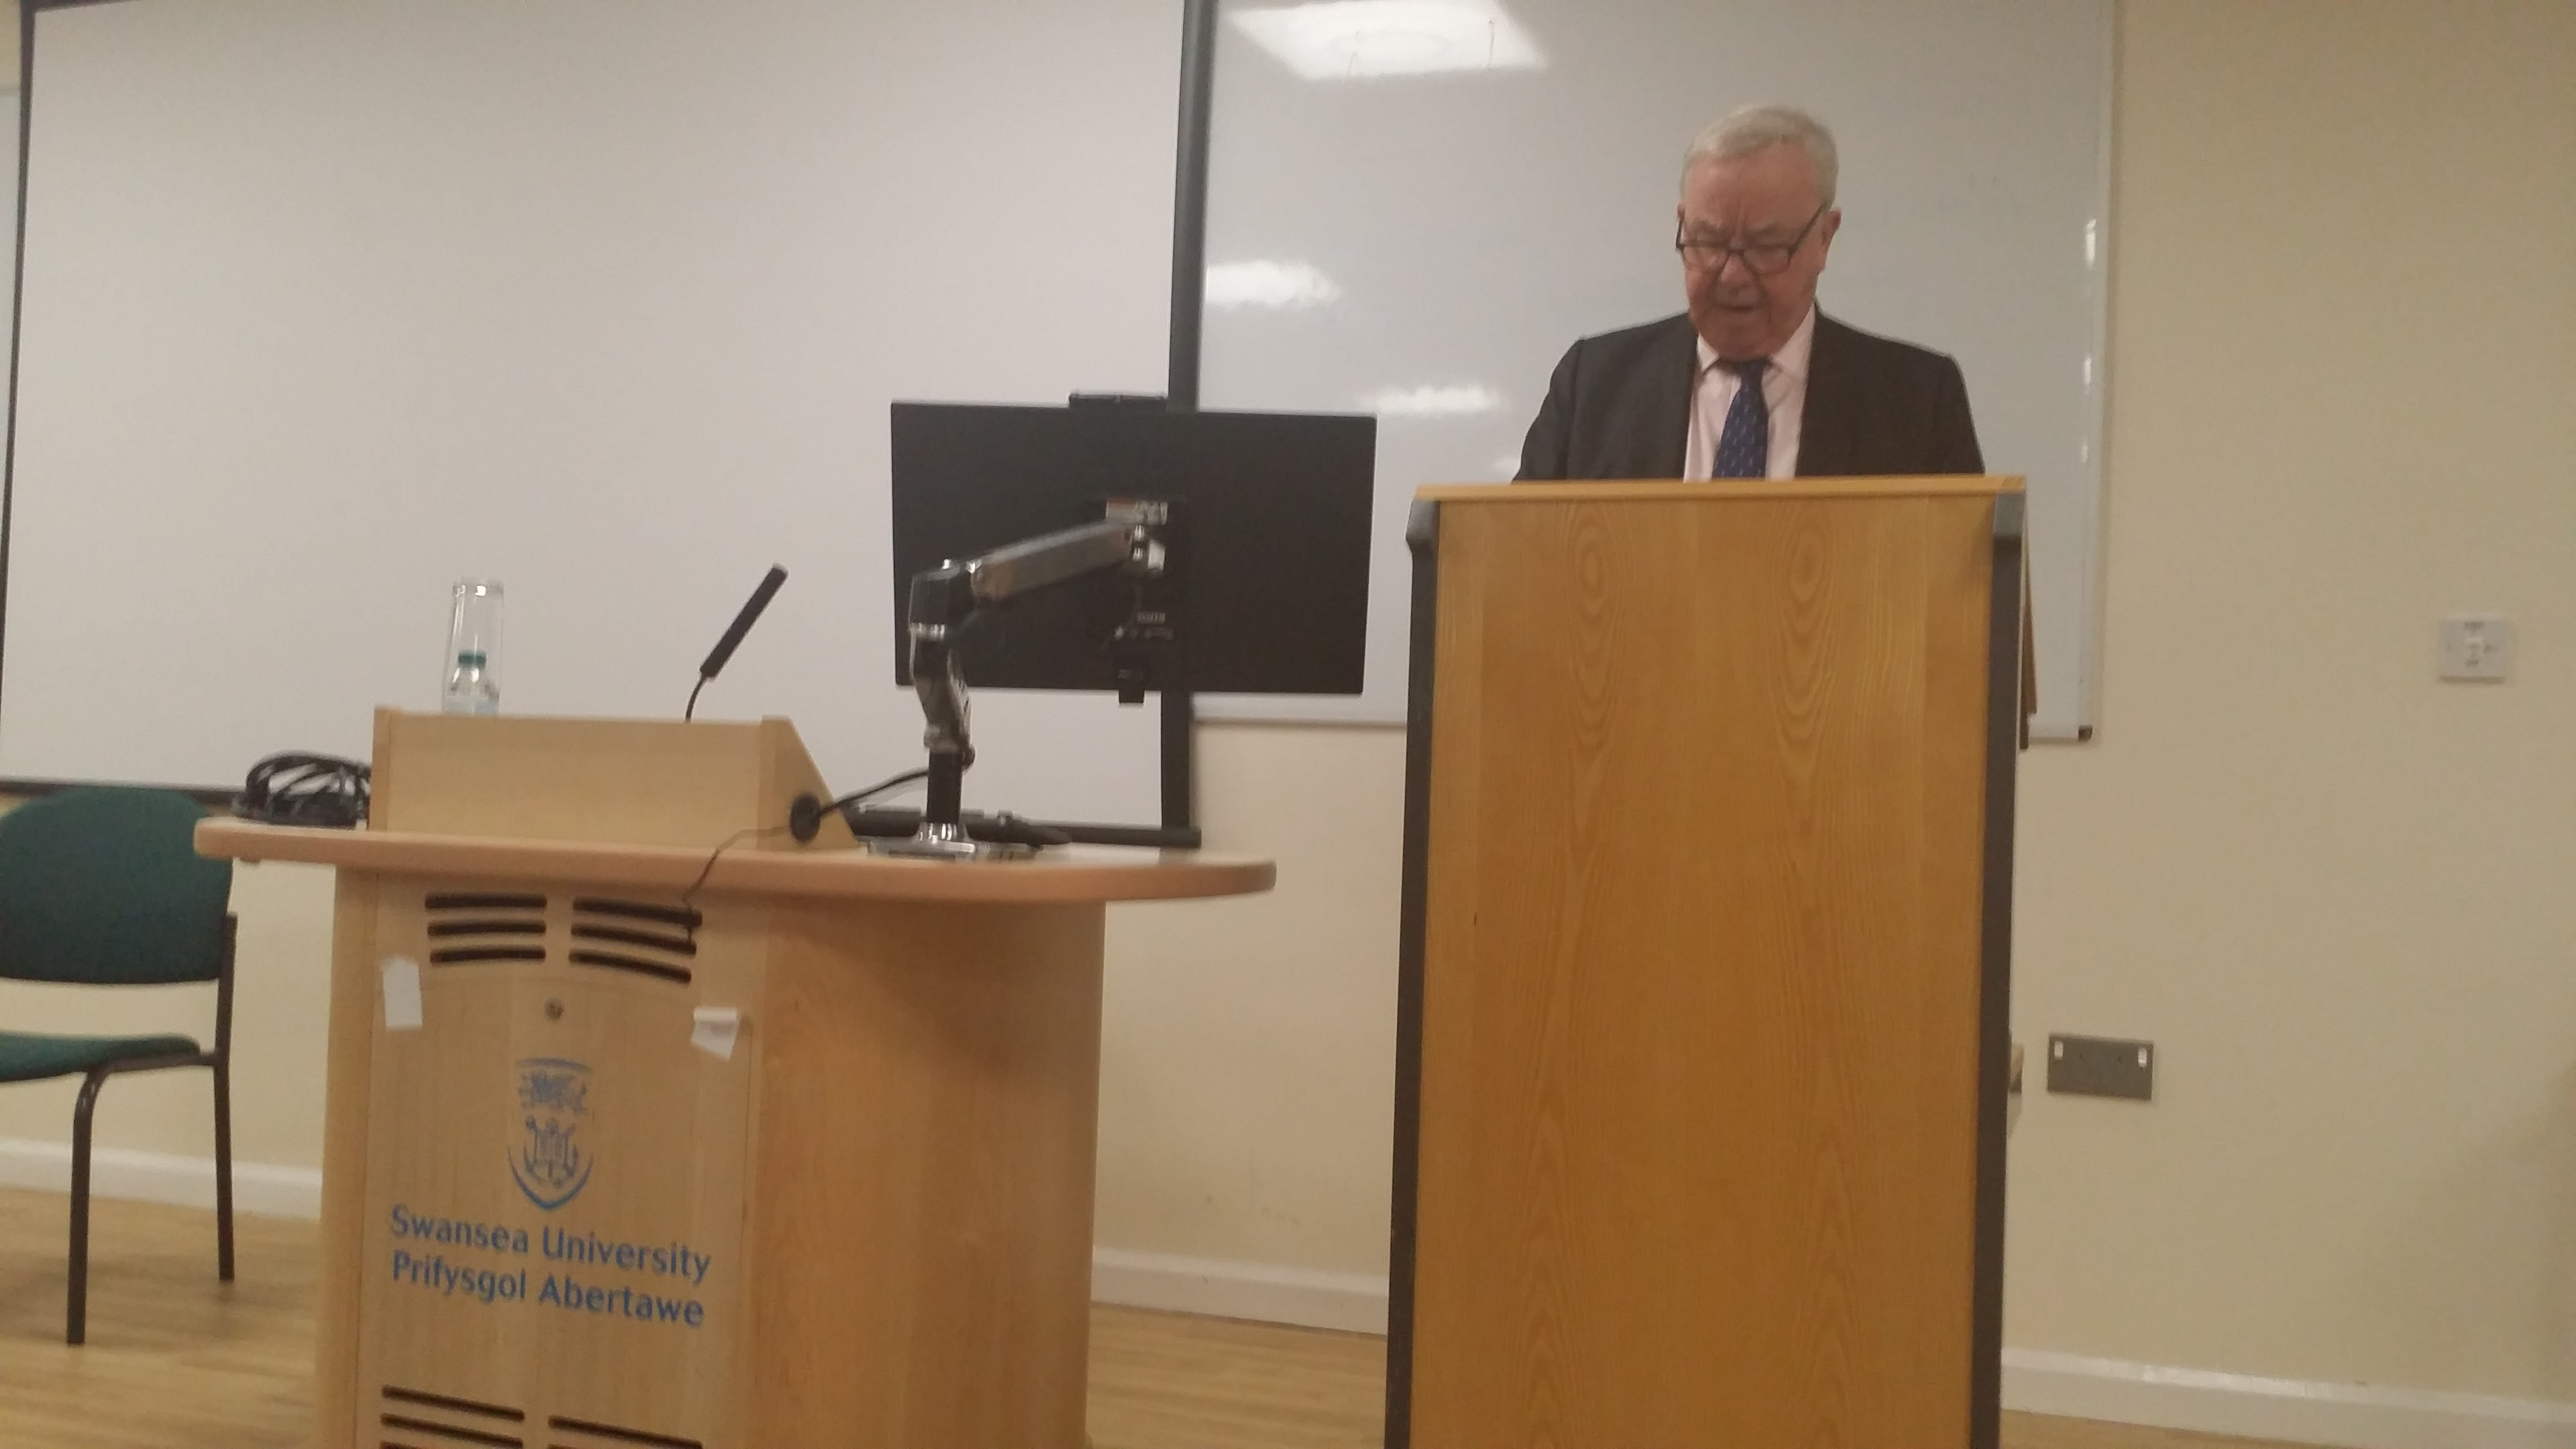 Lord Clarke speaking at the public lecture